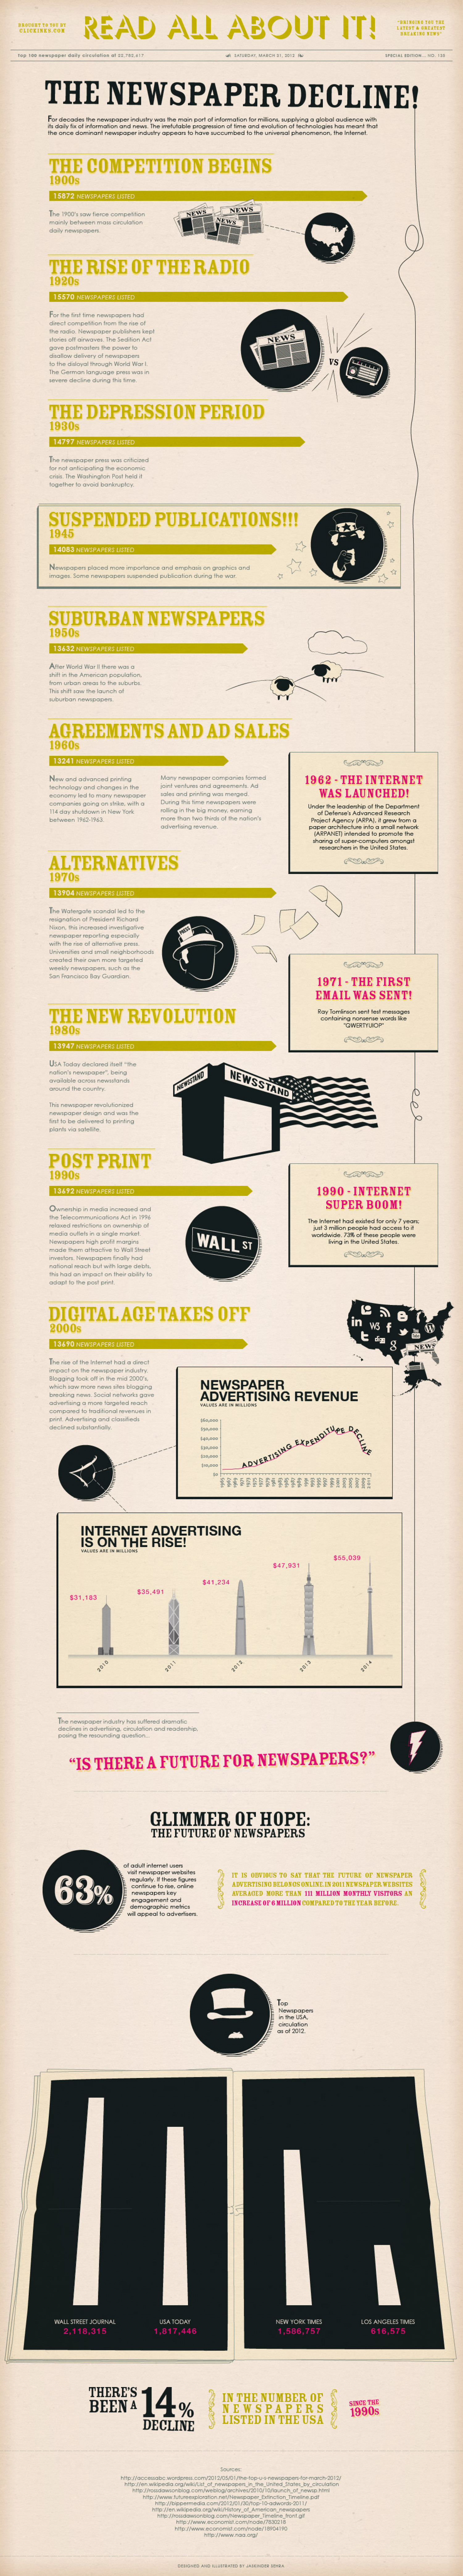 The Newspaper Decline Infographic